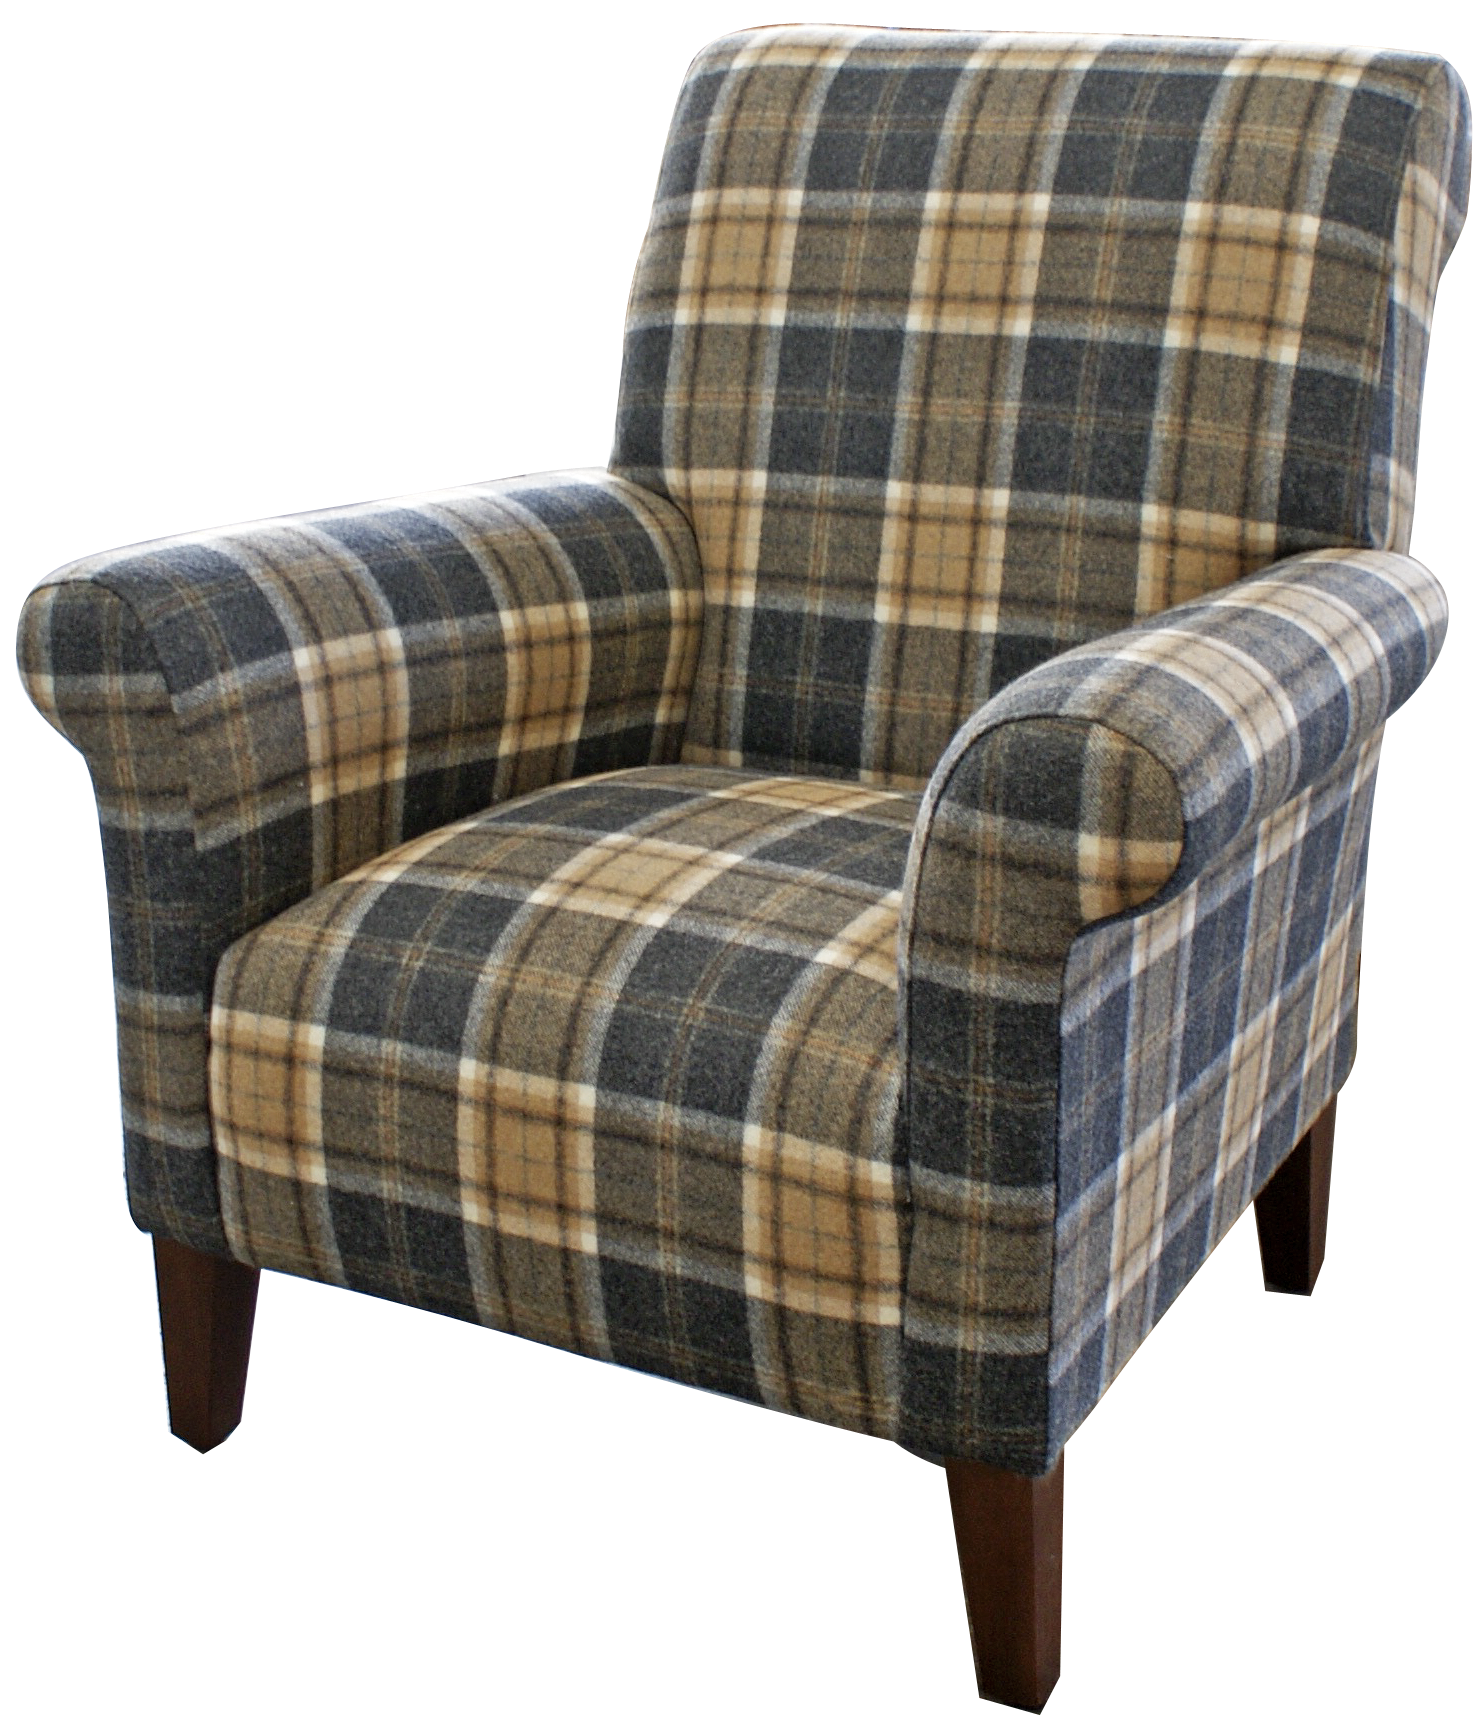 Jonty Chair - Check